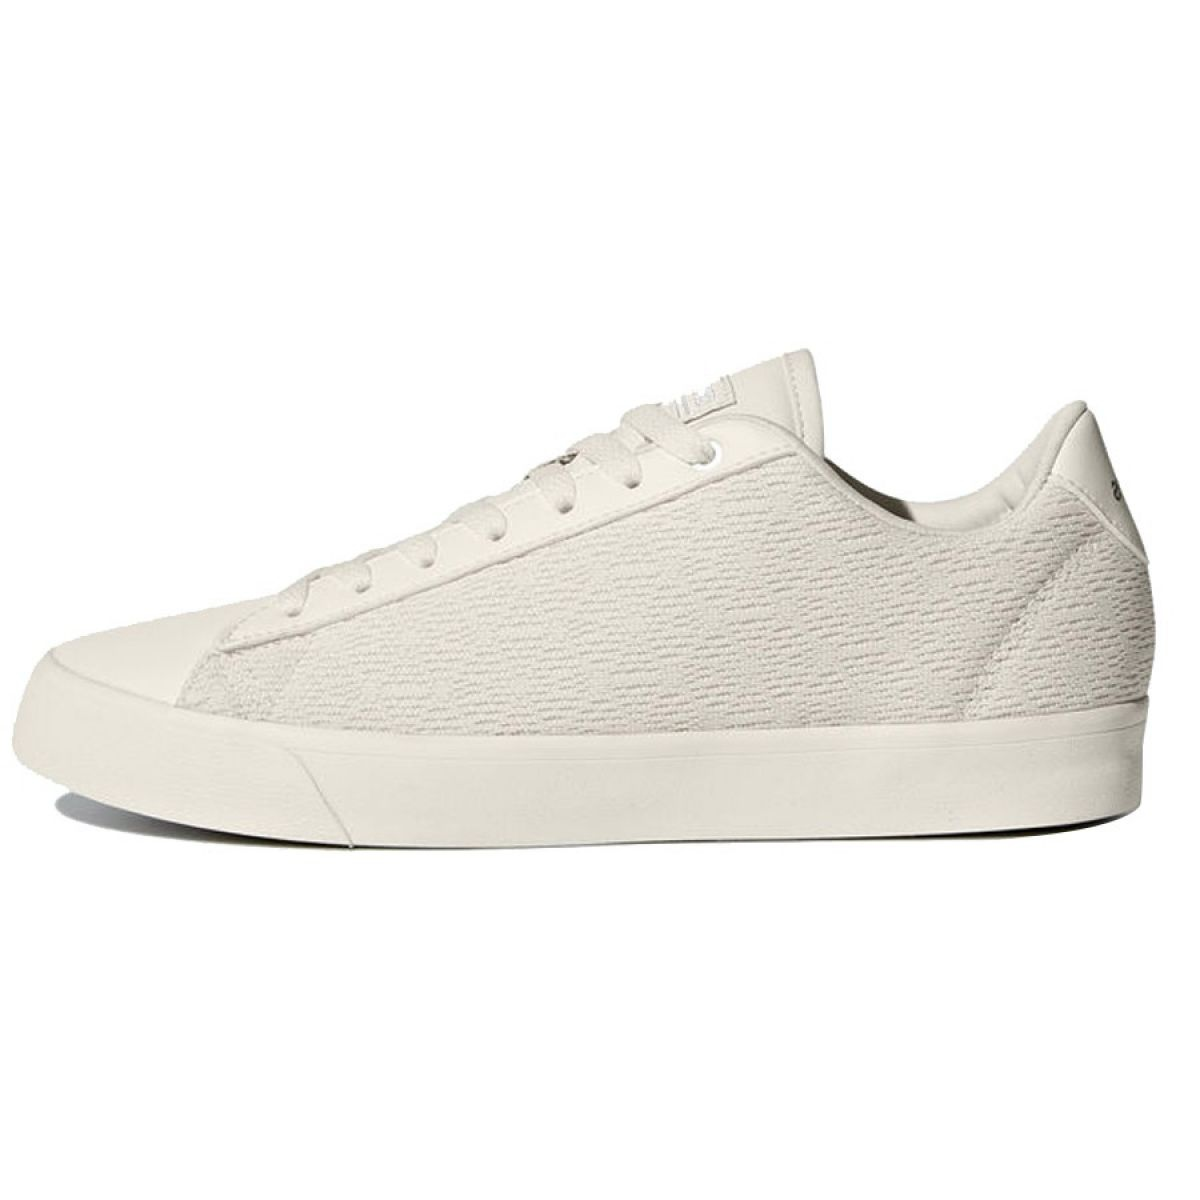 adidas Originals Cloudfoam Daily QT Clean in weiss DB1738 | everysize